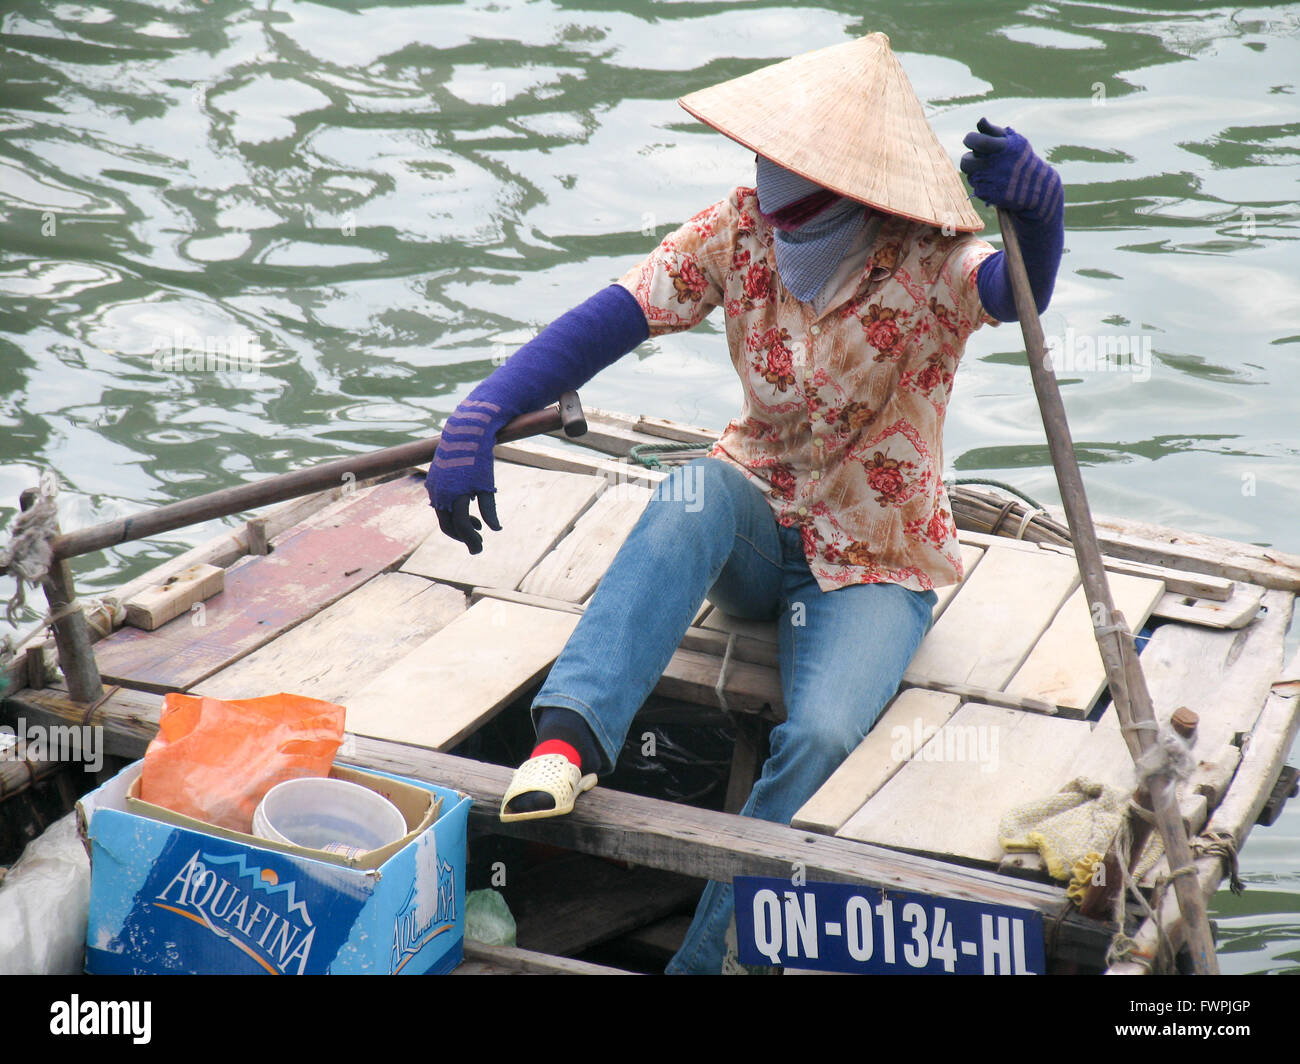 A woman sitting at the back of a wooden row boat. Stock Photo